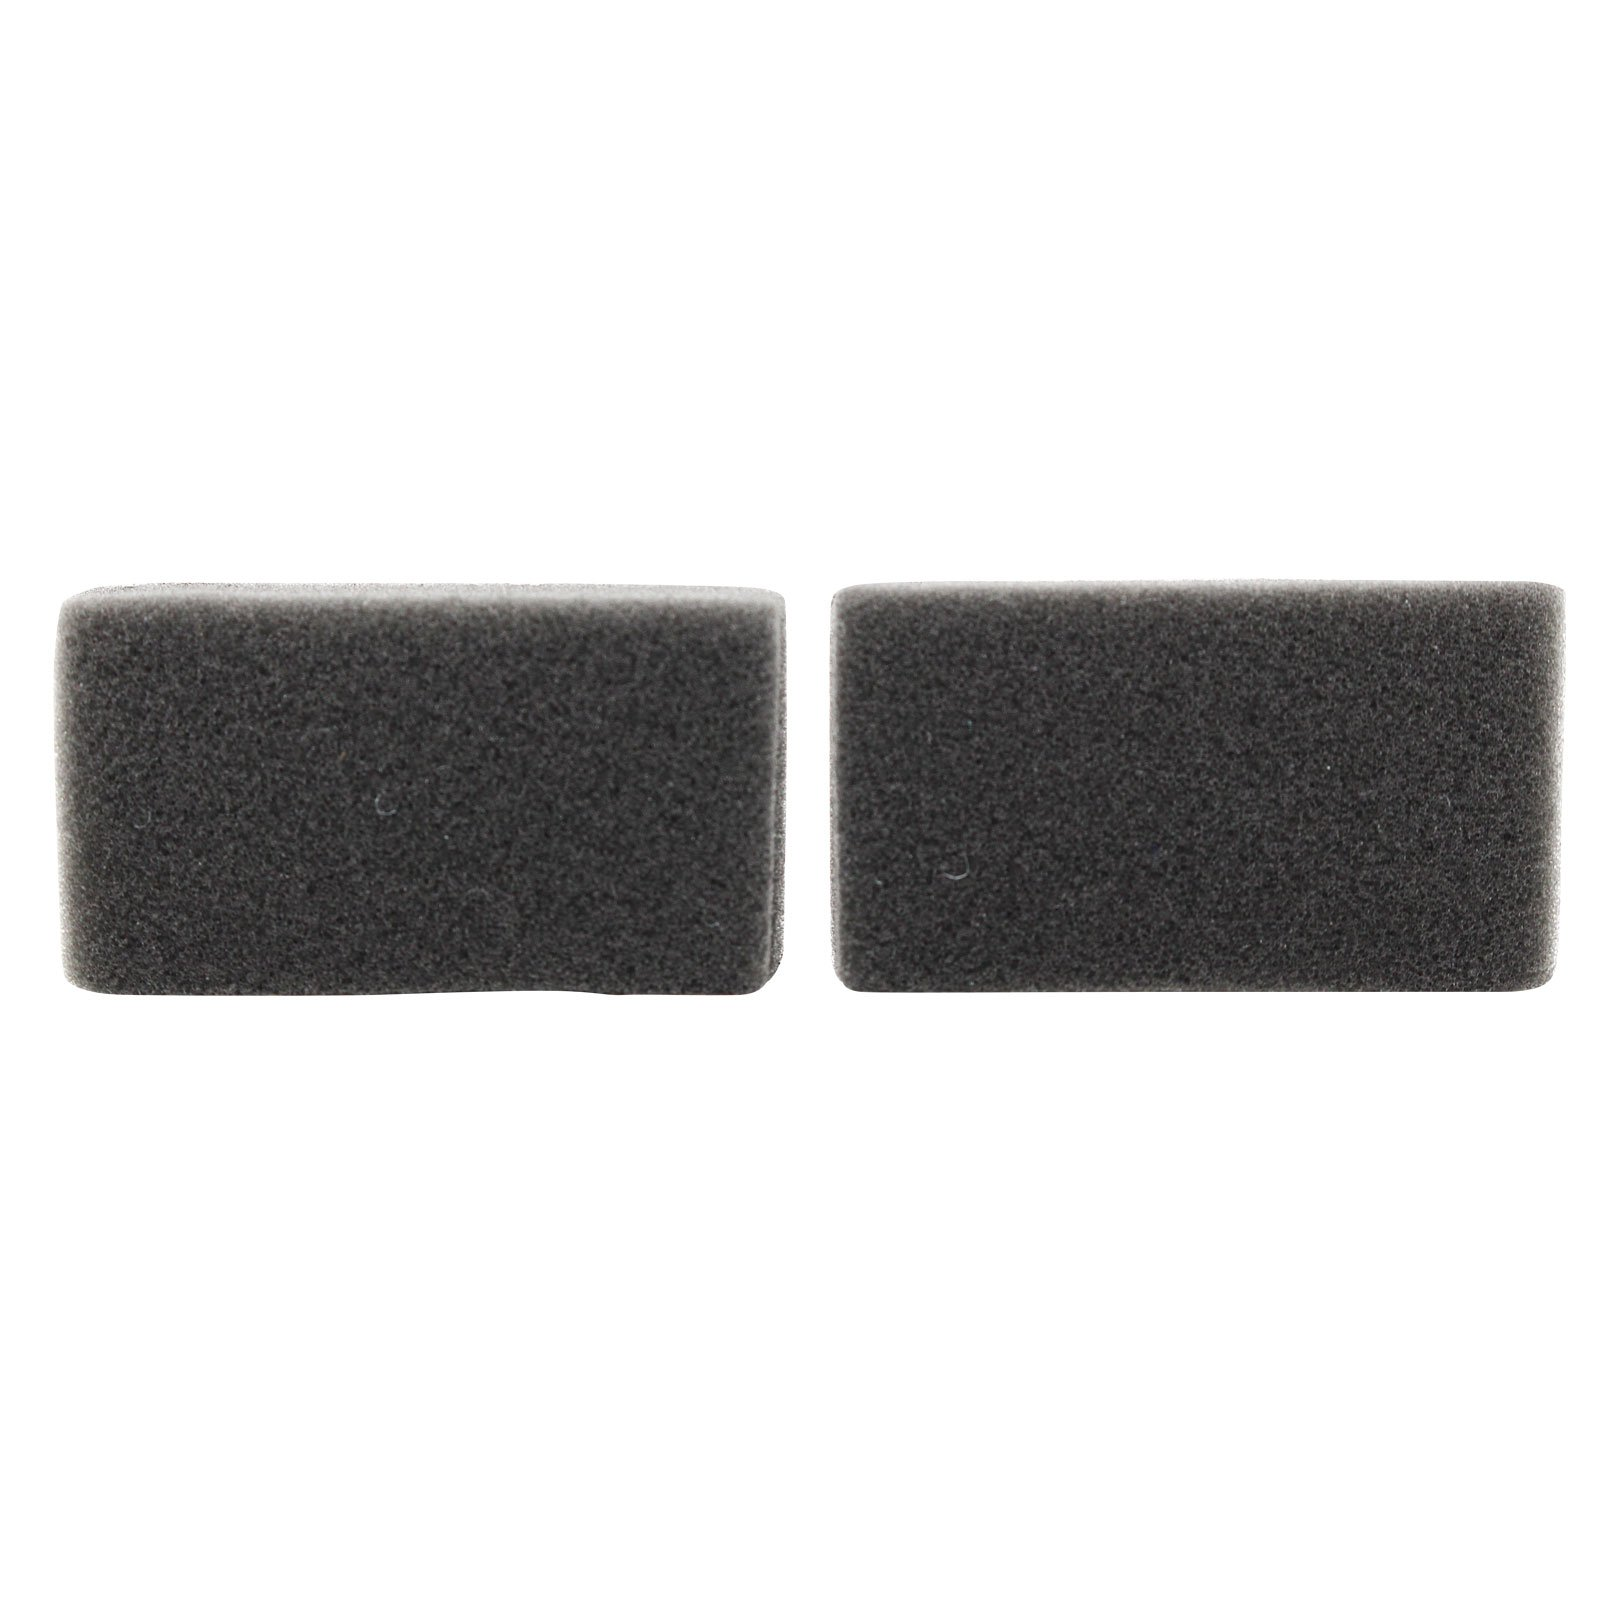 2 Replacement Reusable CPAP Foam Filters for Respironics PR System One BiPAP Auto